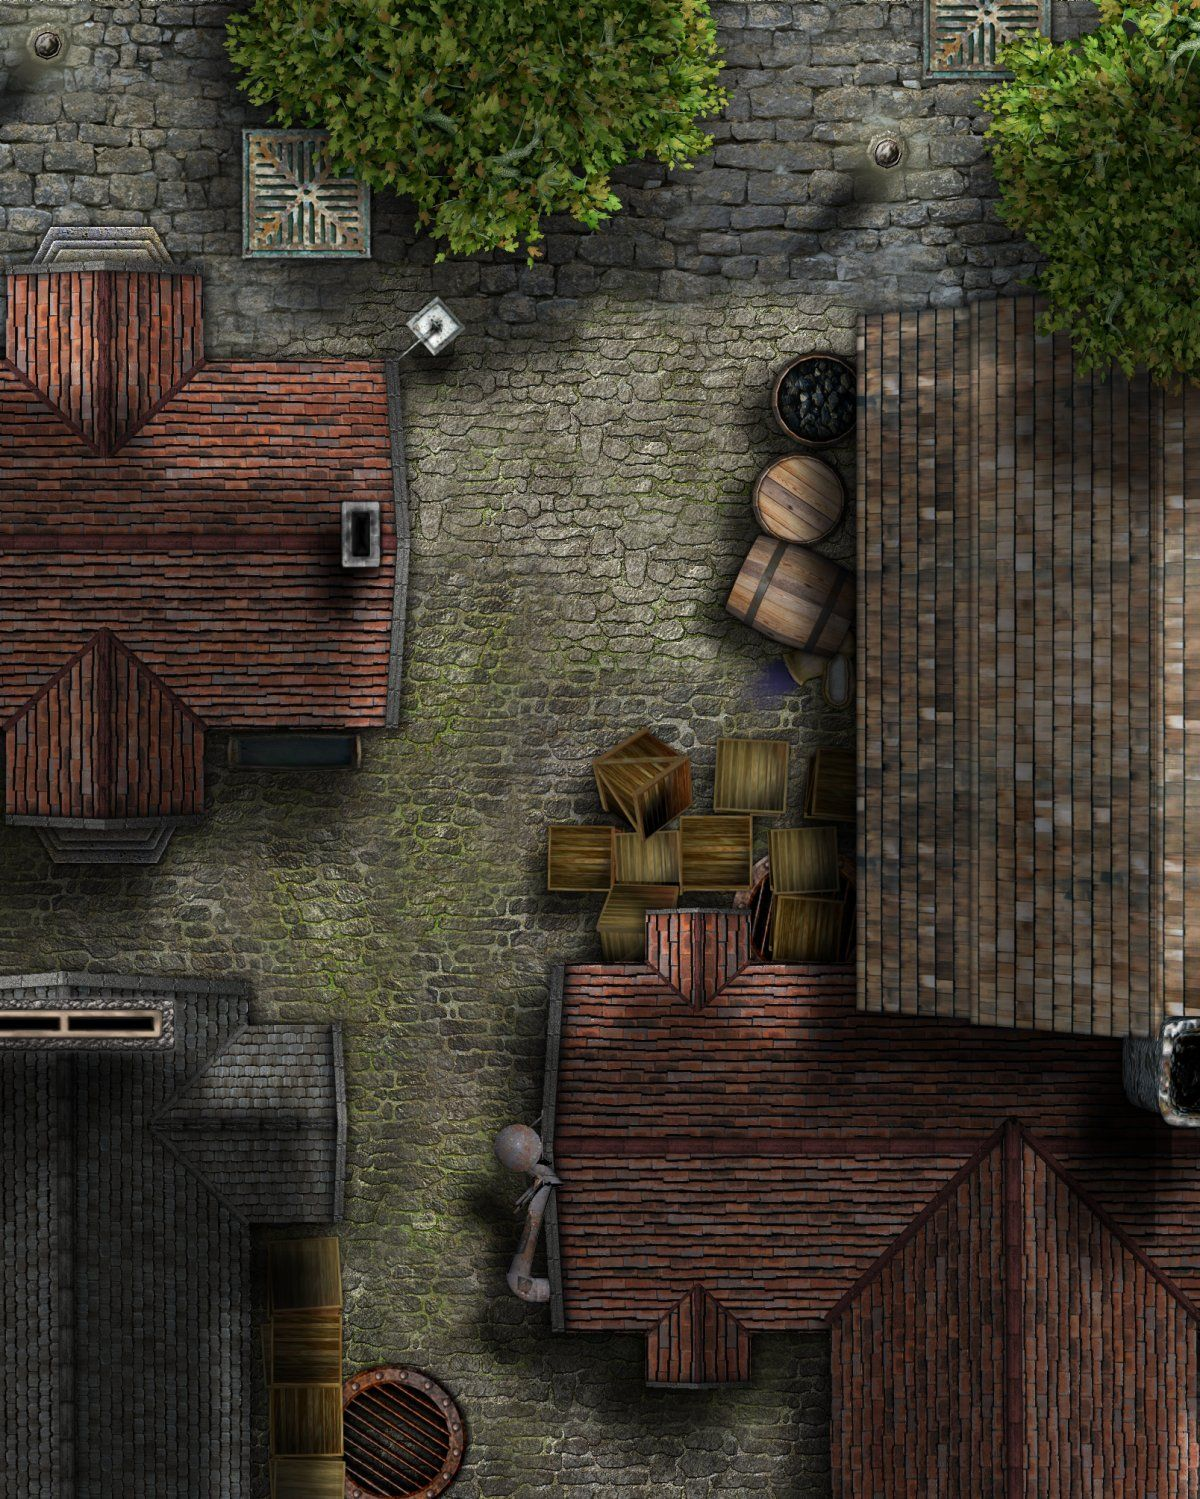 Dnd Alley Map : alley, Dundjinni, Mapping, Software, Forums:, Scenes, (Alley, Encounter, Added), Fantasy, Tabletop